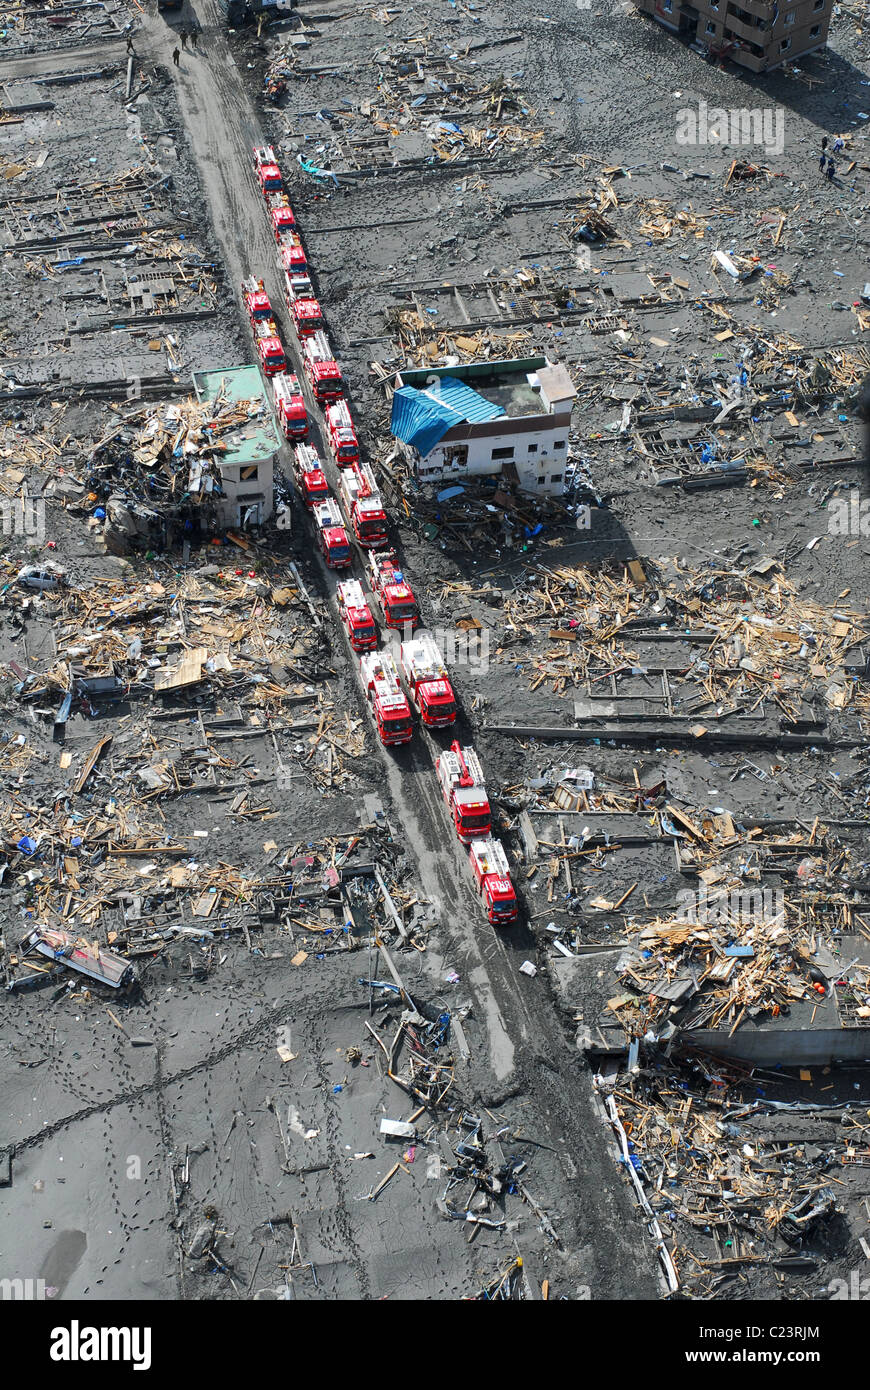 SUKUISO, Japan (March 18, 2011) Japanese fire trucks line a road in this aerial photo of Sukuiso, Japan after earthquake Stock Photo